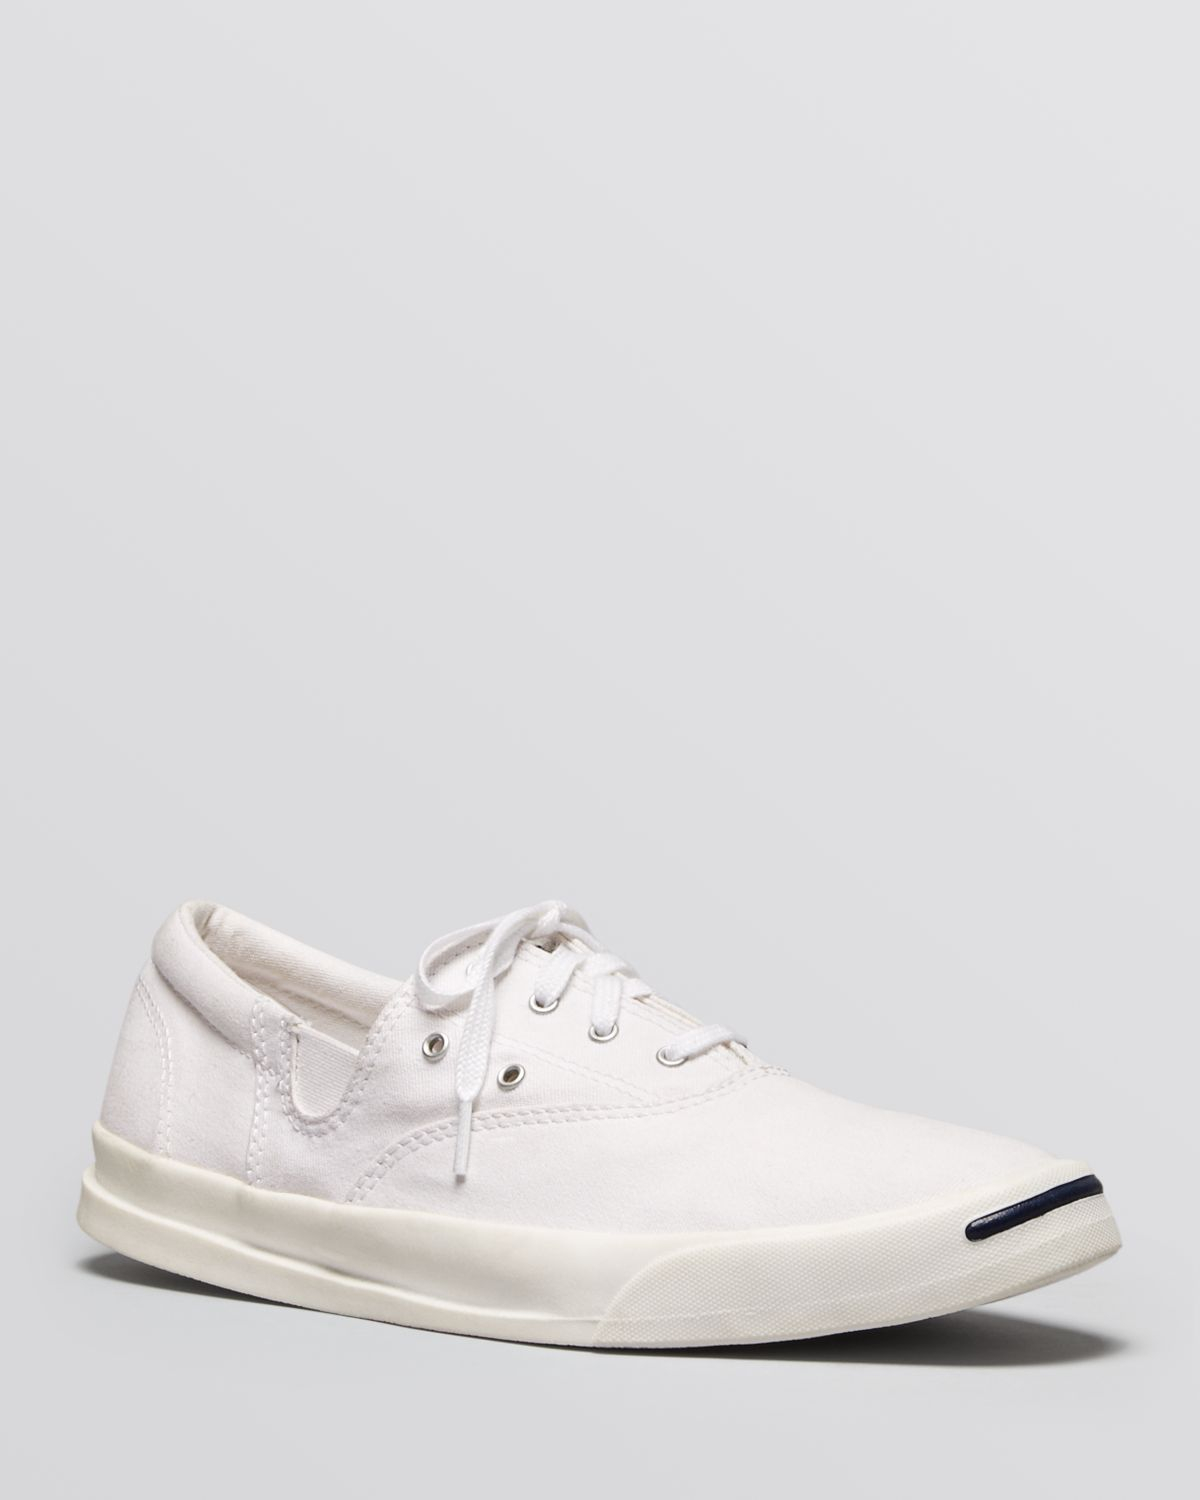 32b56b02e70c Lyst - Converse Jack Purcell Jeffrey Cvo Sneakers in White for Men